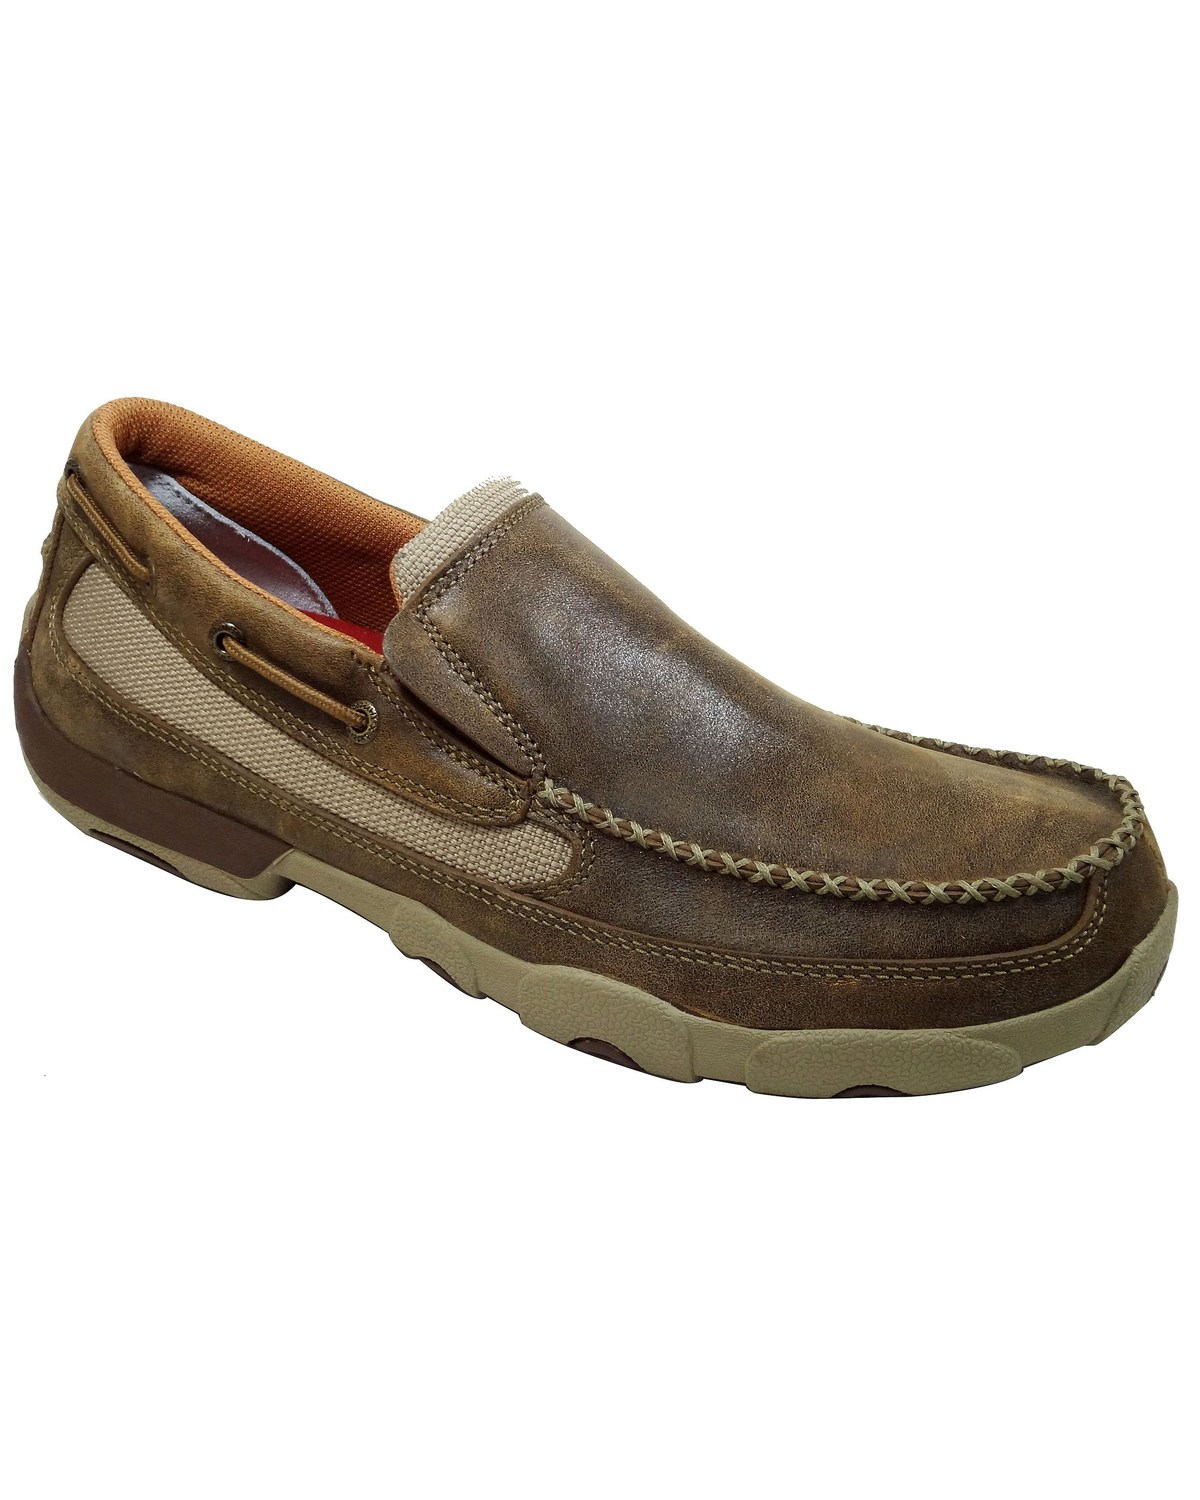 Mens Twisted X Slip On Shoes